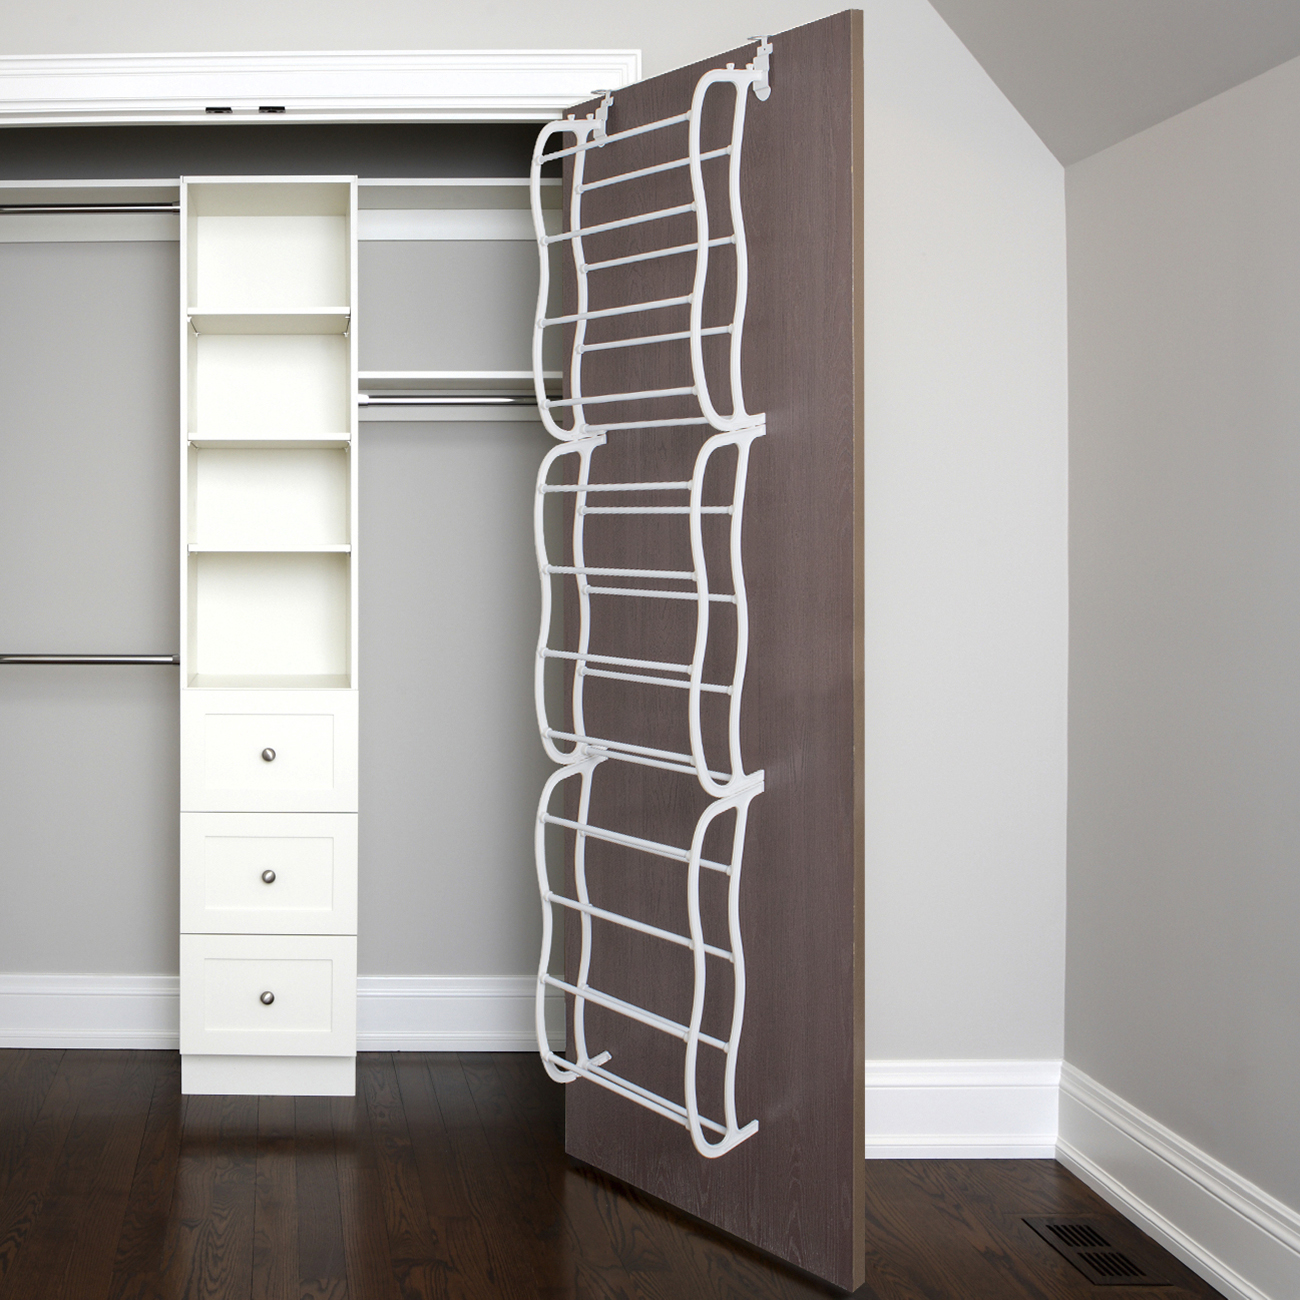 Over-The-Door Shoe Rack for 36 Pairs, Wall Hanging Closet Organizer Storage Stand